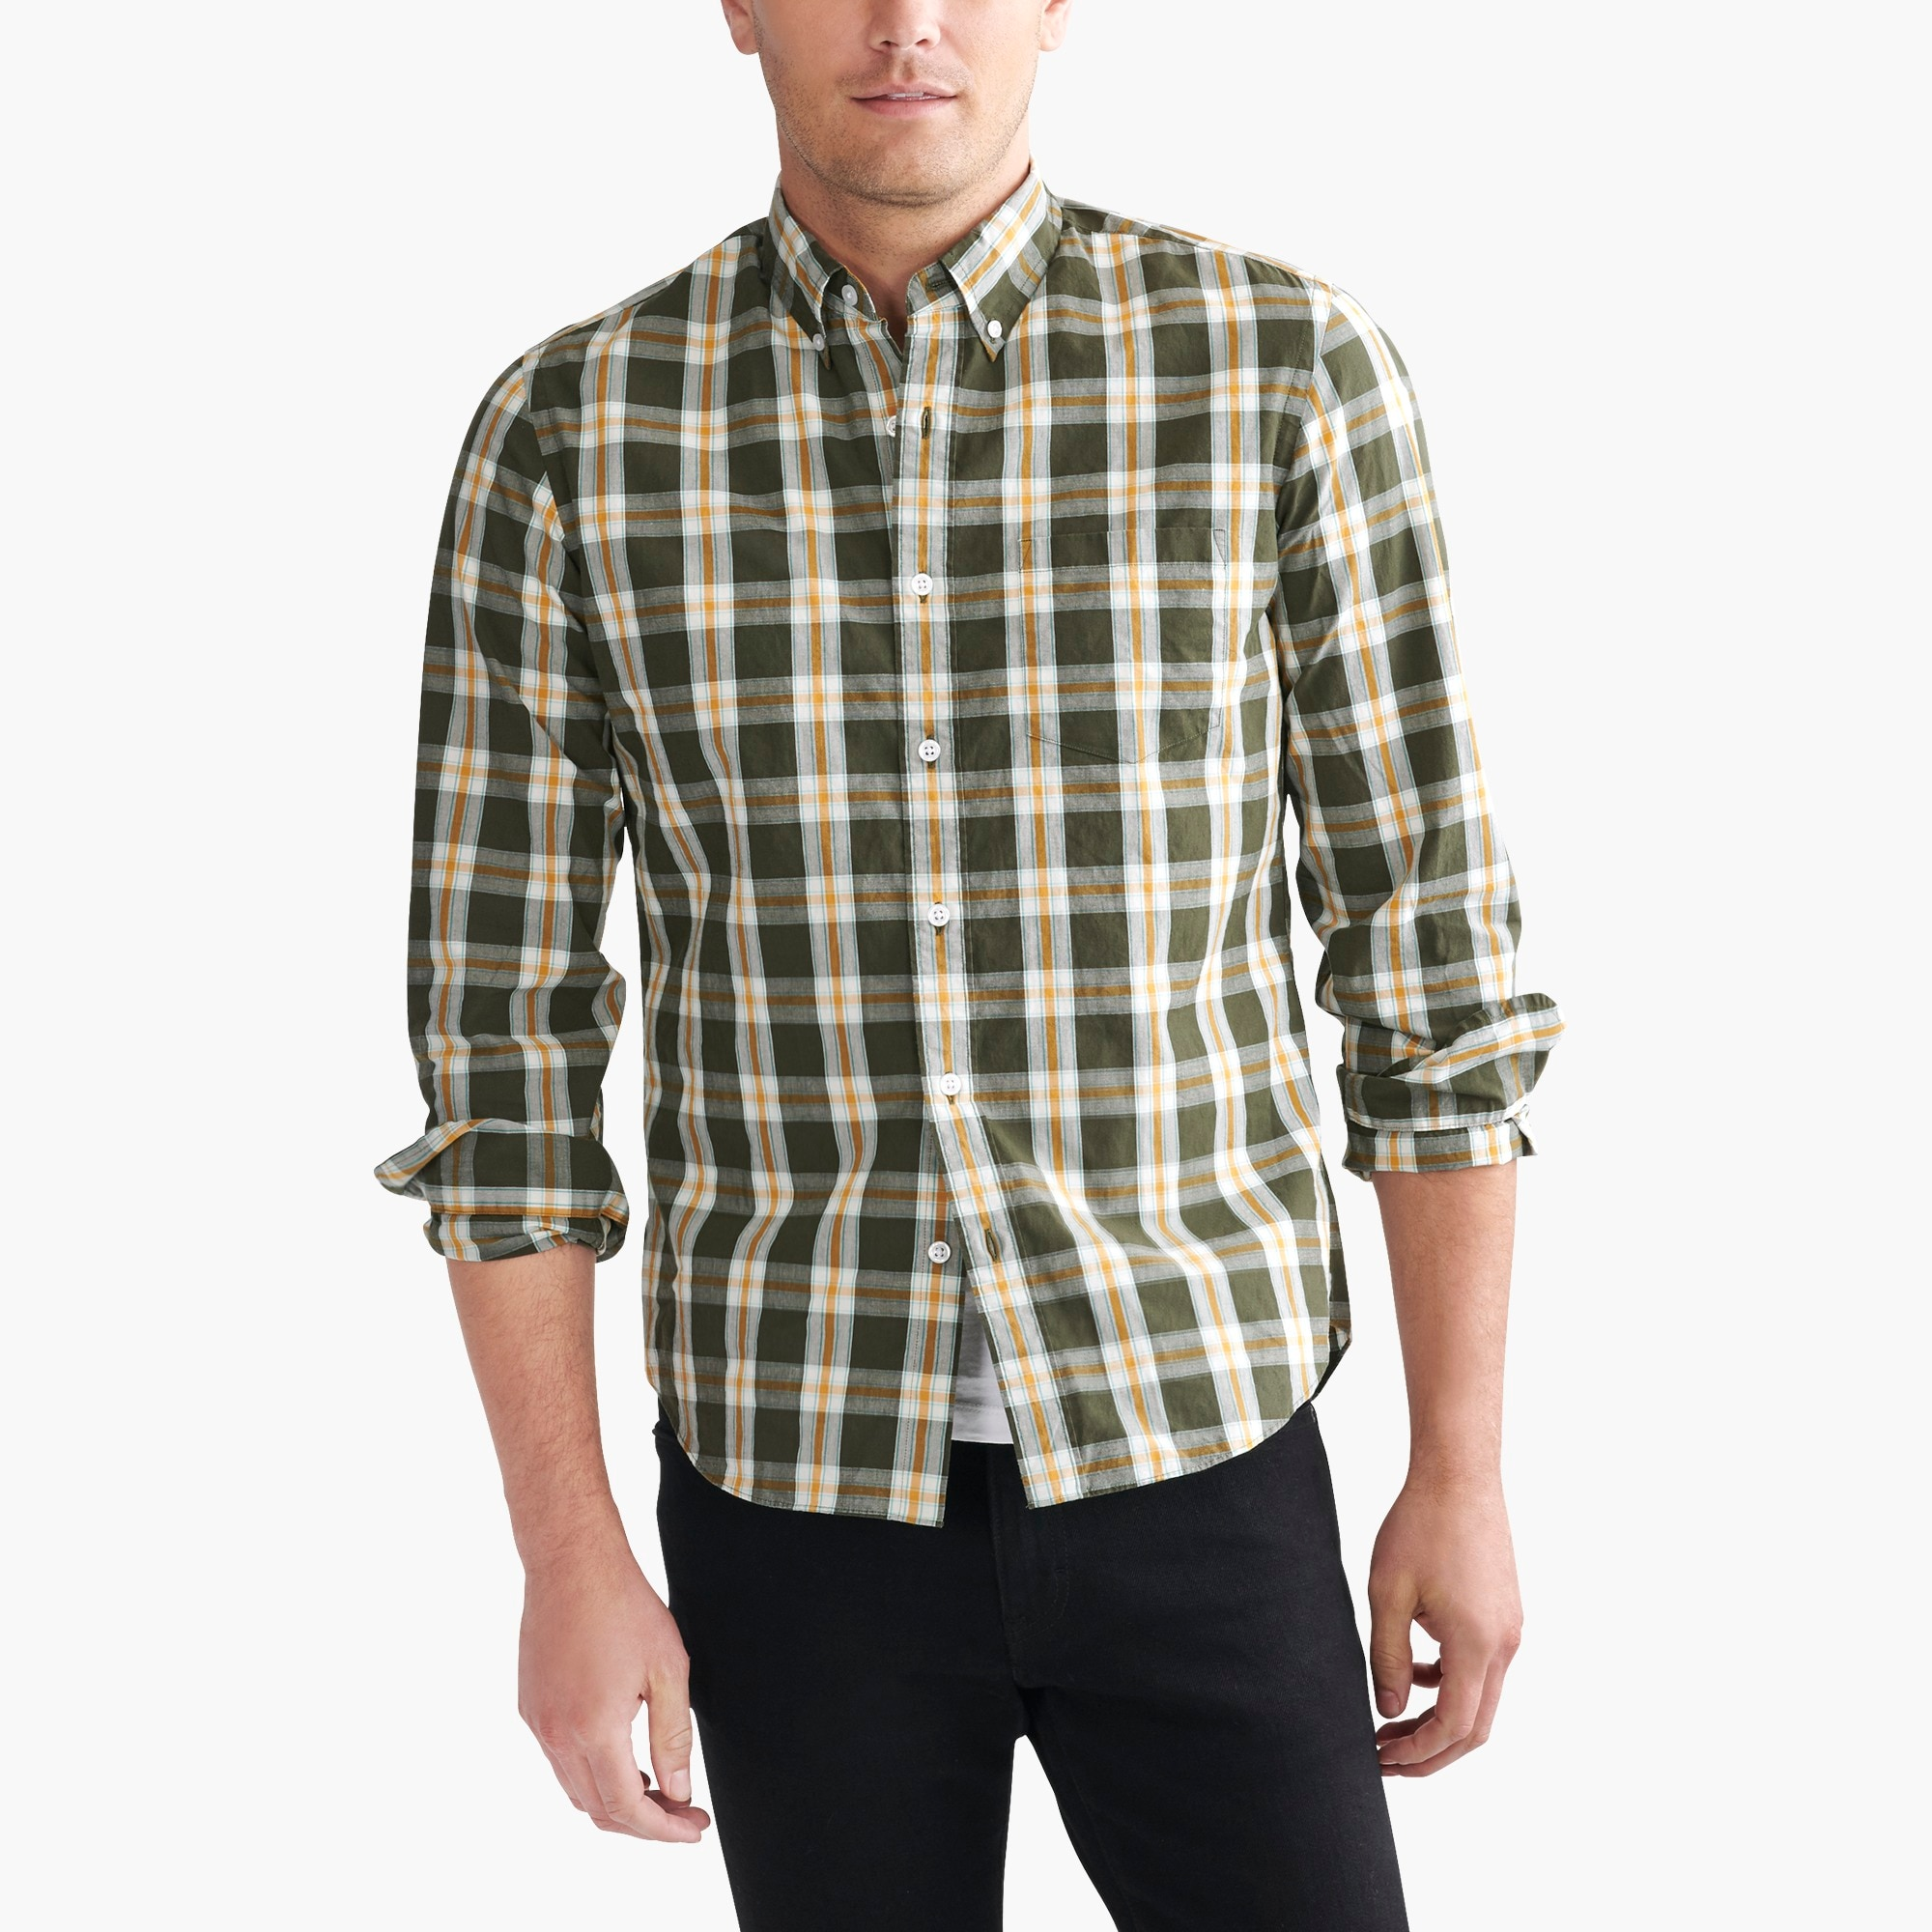 slim flex washed shirt in plaid : factorymen slim flex authentic washed